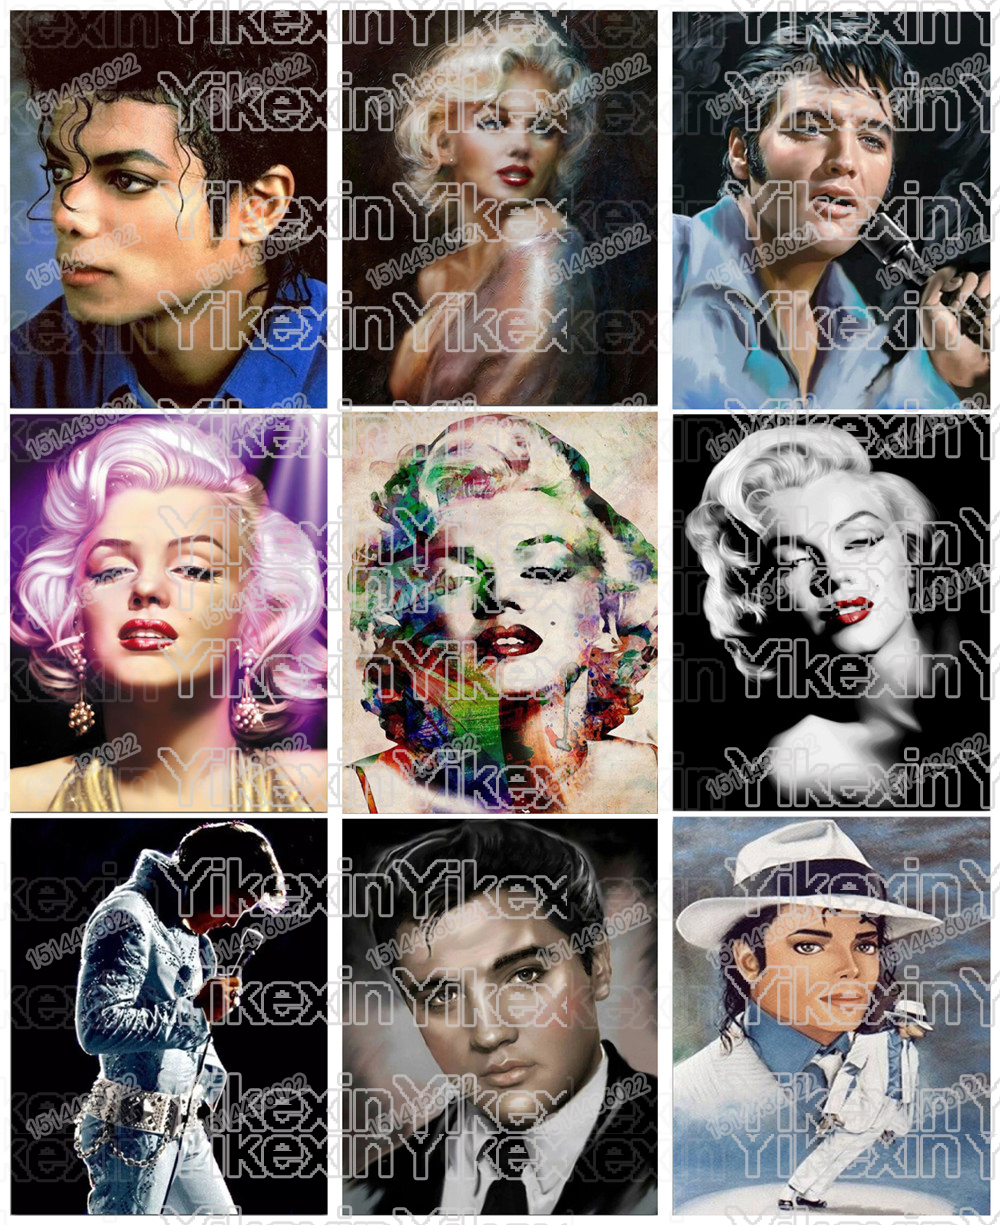 Elvis Marilyn Monroe Us 48 40 Off Full Round Drill 5d Diy Diamond Painting Marilyn Monroe Elvis Mike Jackson 3d Mosaic Embroidery Cross Stitch In Diamond Painting